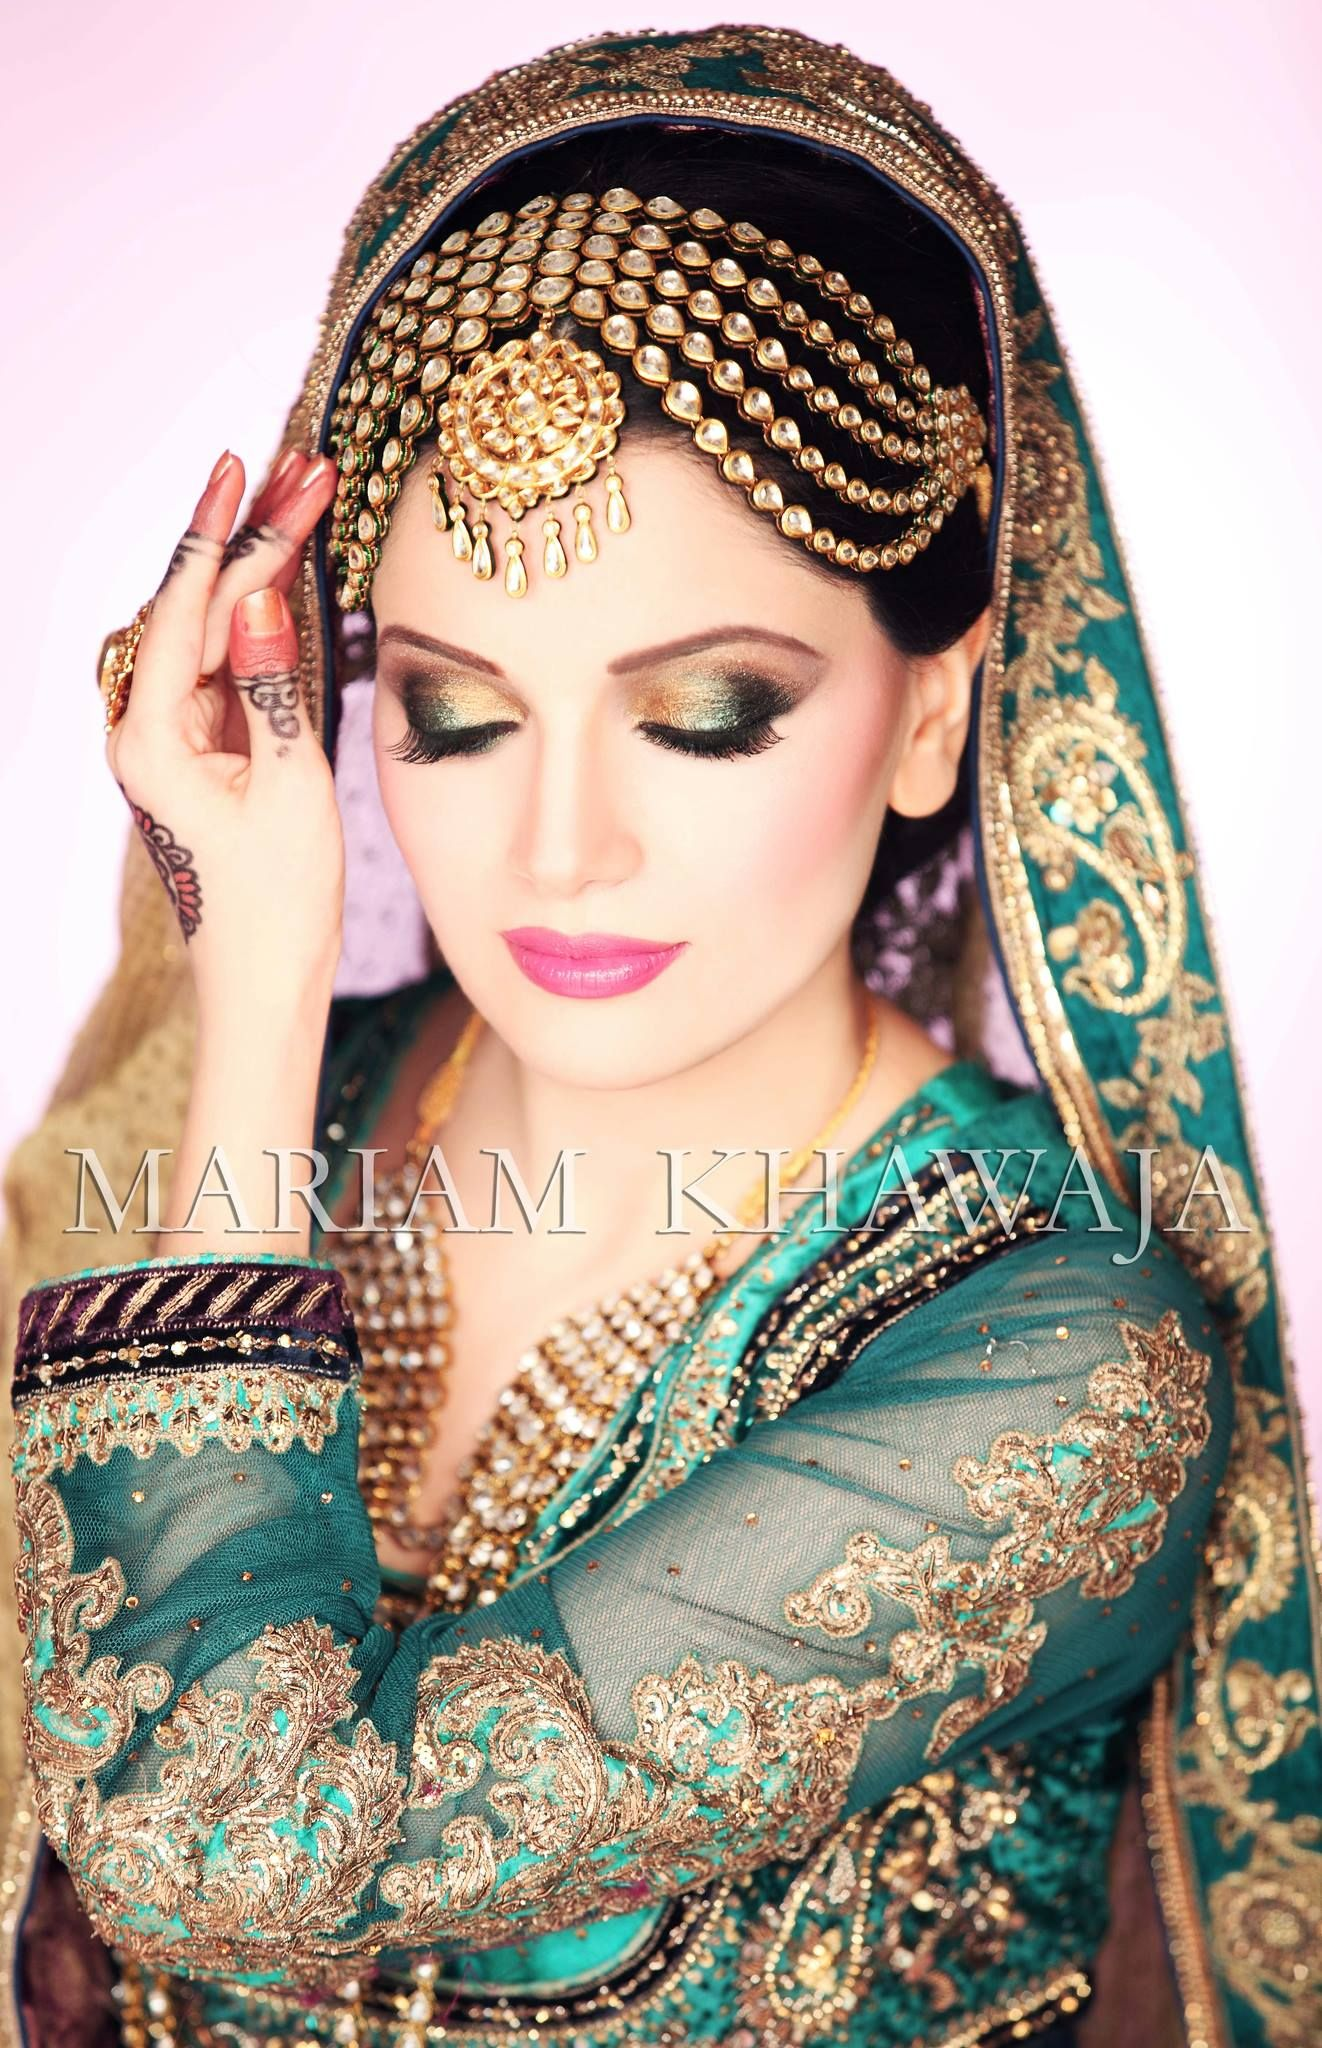 Worst makeup mistakes on your wedding indian bridal diaries - Worst Makeup Mistakes On Your Wedding Indian Bridal Diaries 11